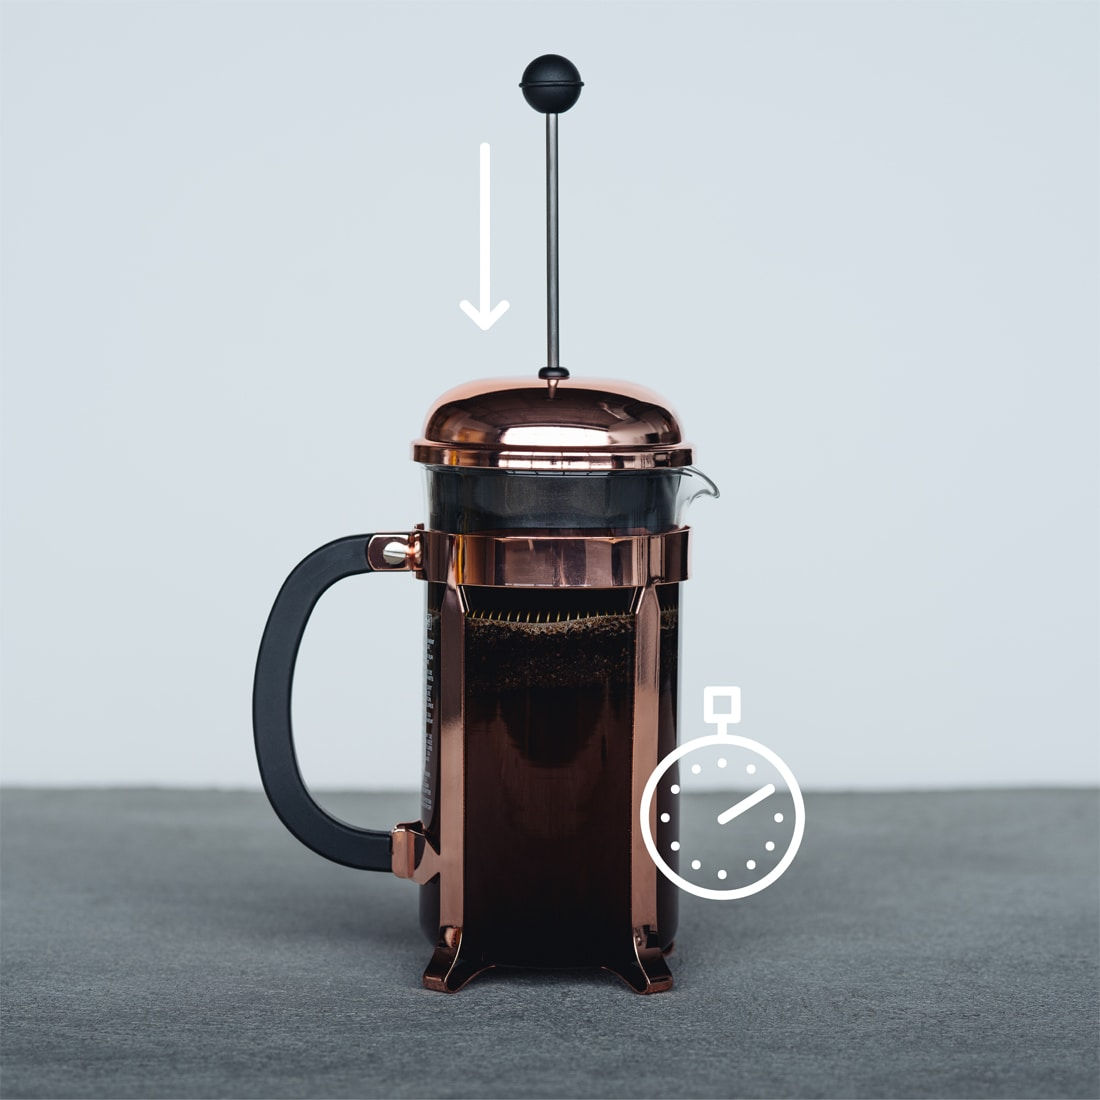 French press with overlaid line illustrations of stopwatch and and a downward arrow near the top of the french press